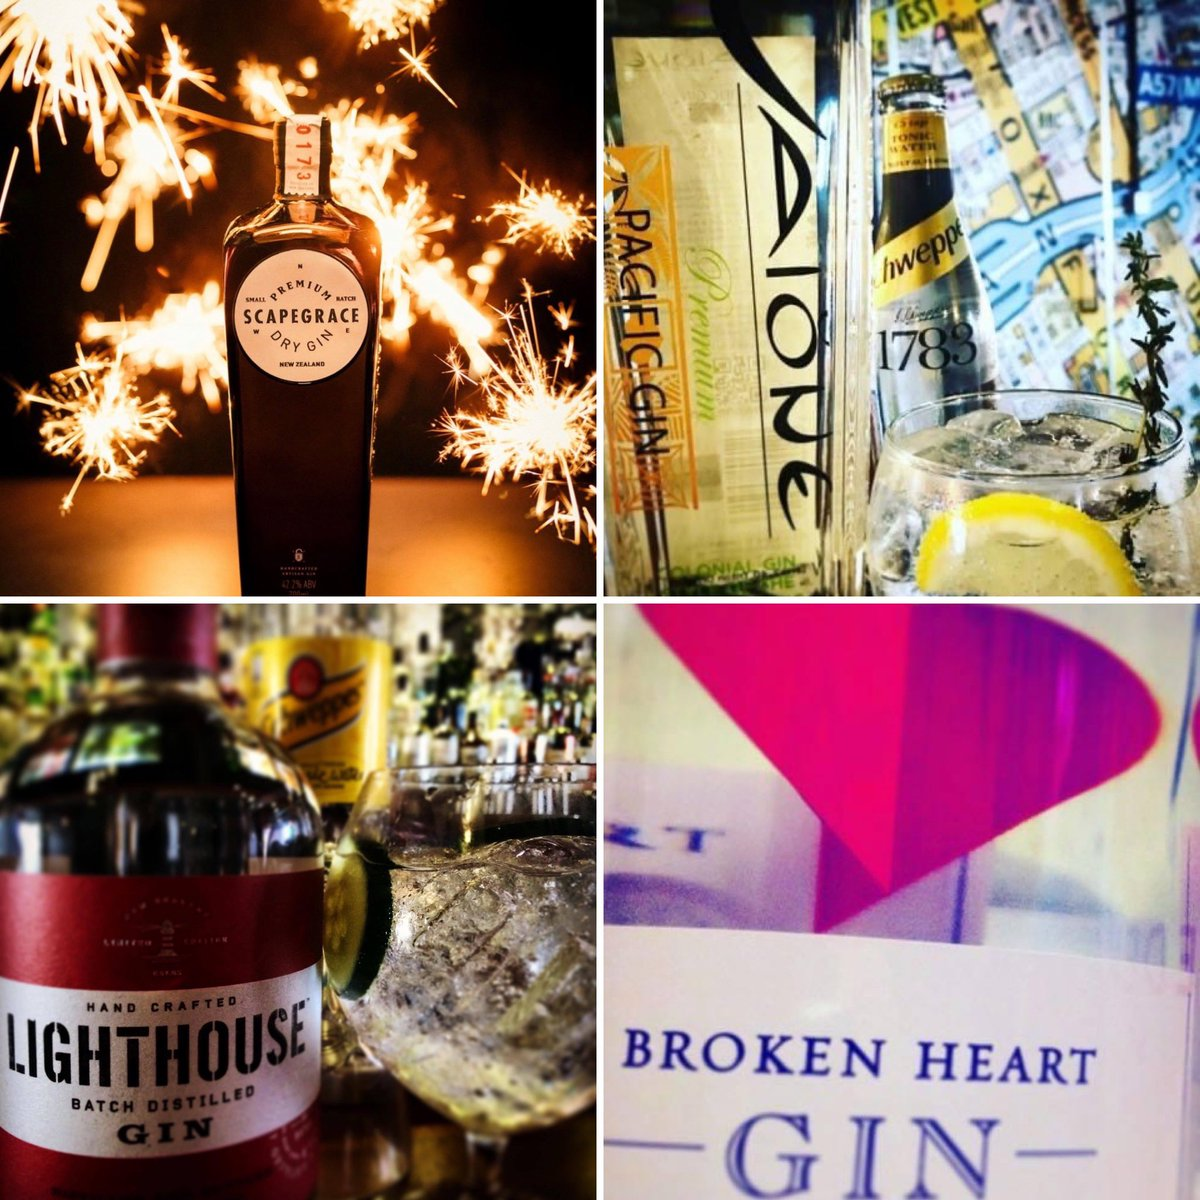 Happy #NewZealandGin to all of our #gin friends from us @TheAtlasBar 🎉  We'll definitely be raising a glass or two today to celebrate 🍸  What's your favourite #Manchester?   @scapegracegin @VaioneGin @BrokenHeart_NZ